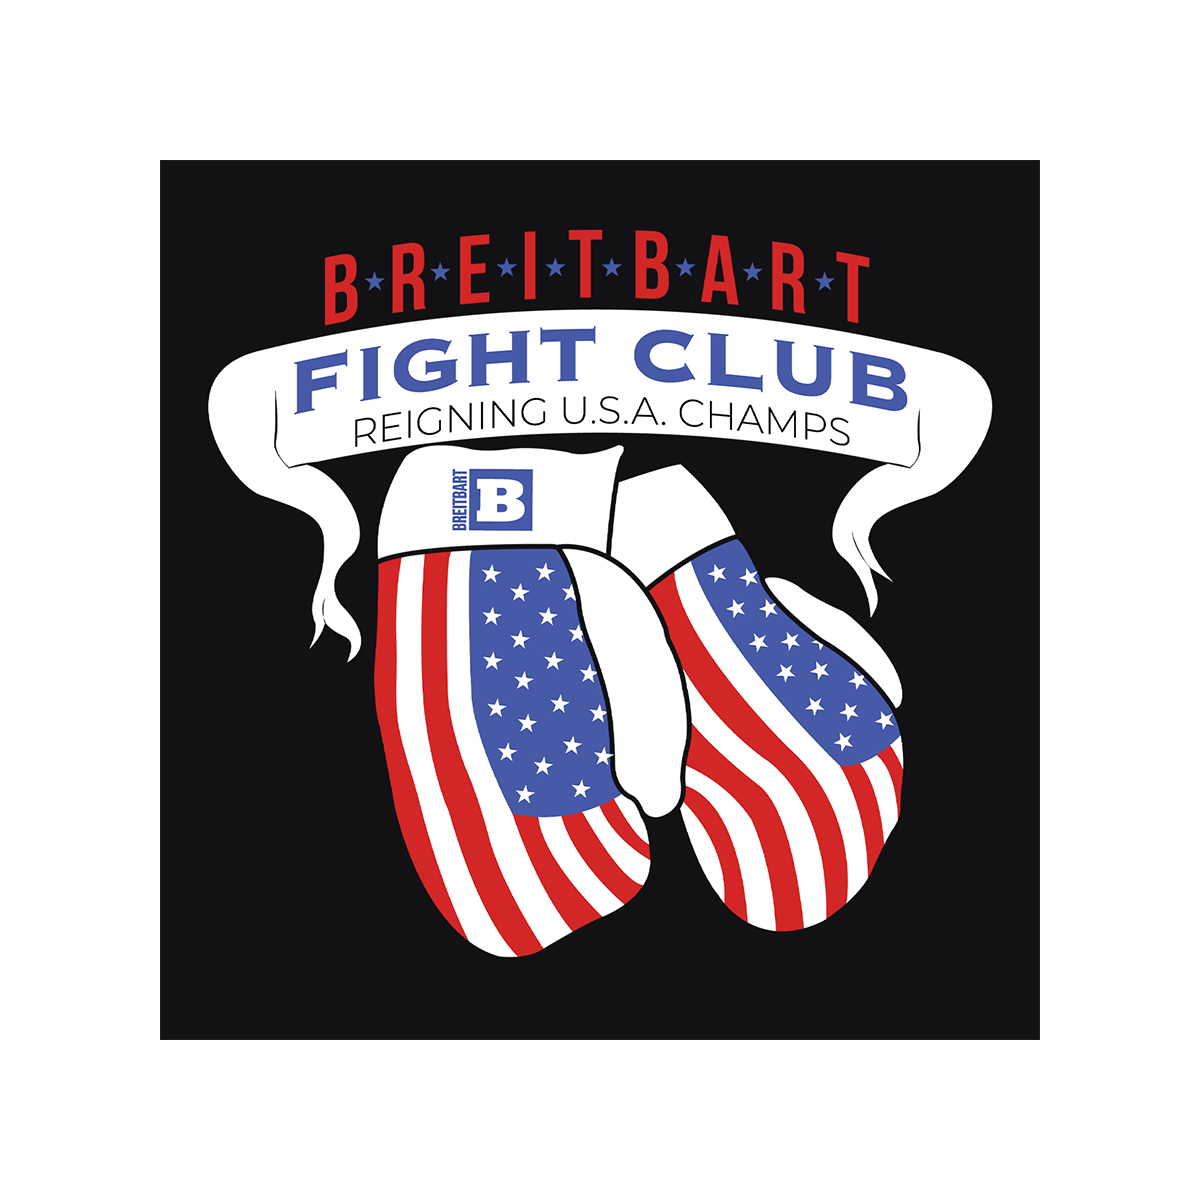 Breitbart Fight Club USA Champs Women's T-shirt - Black